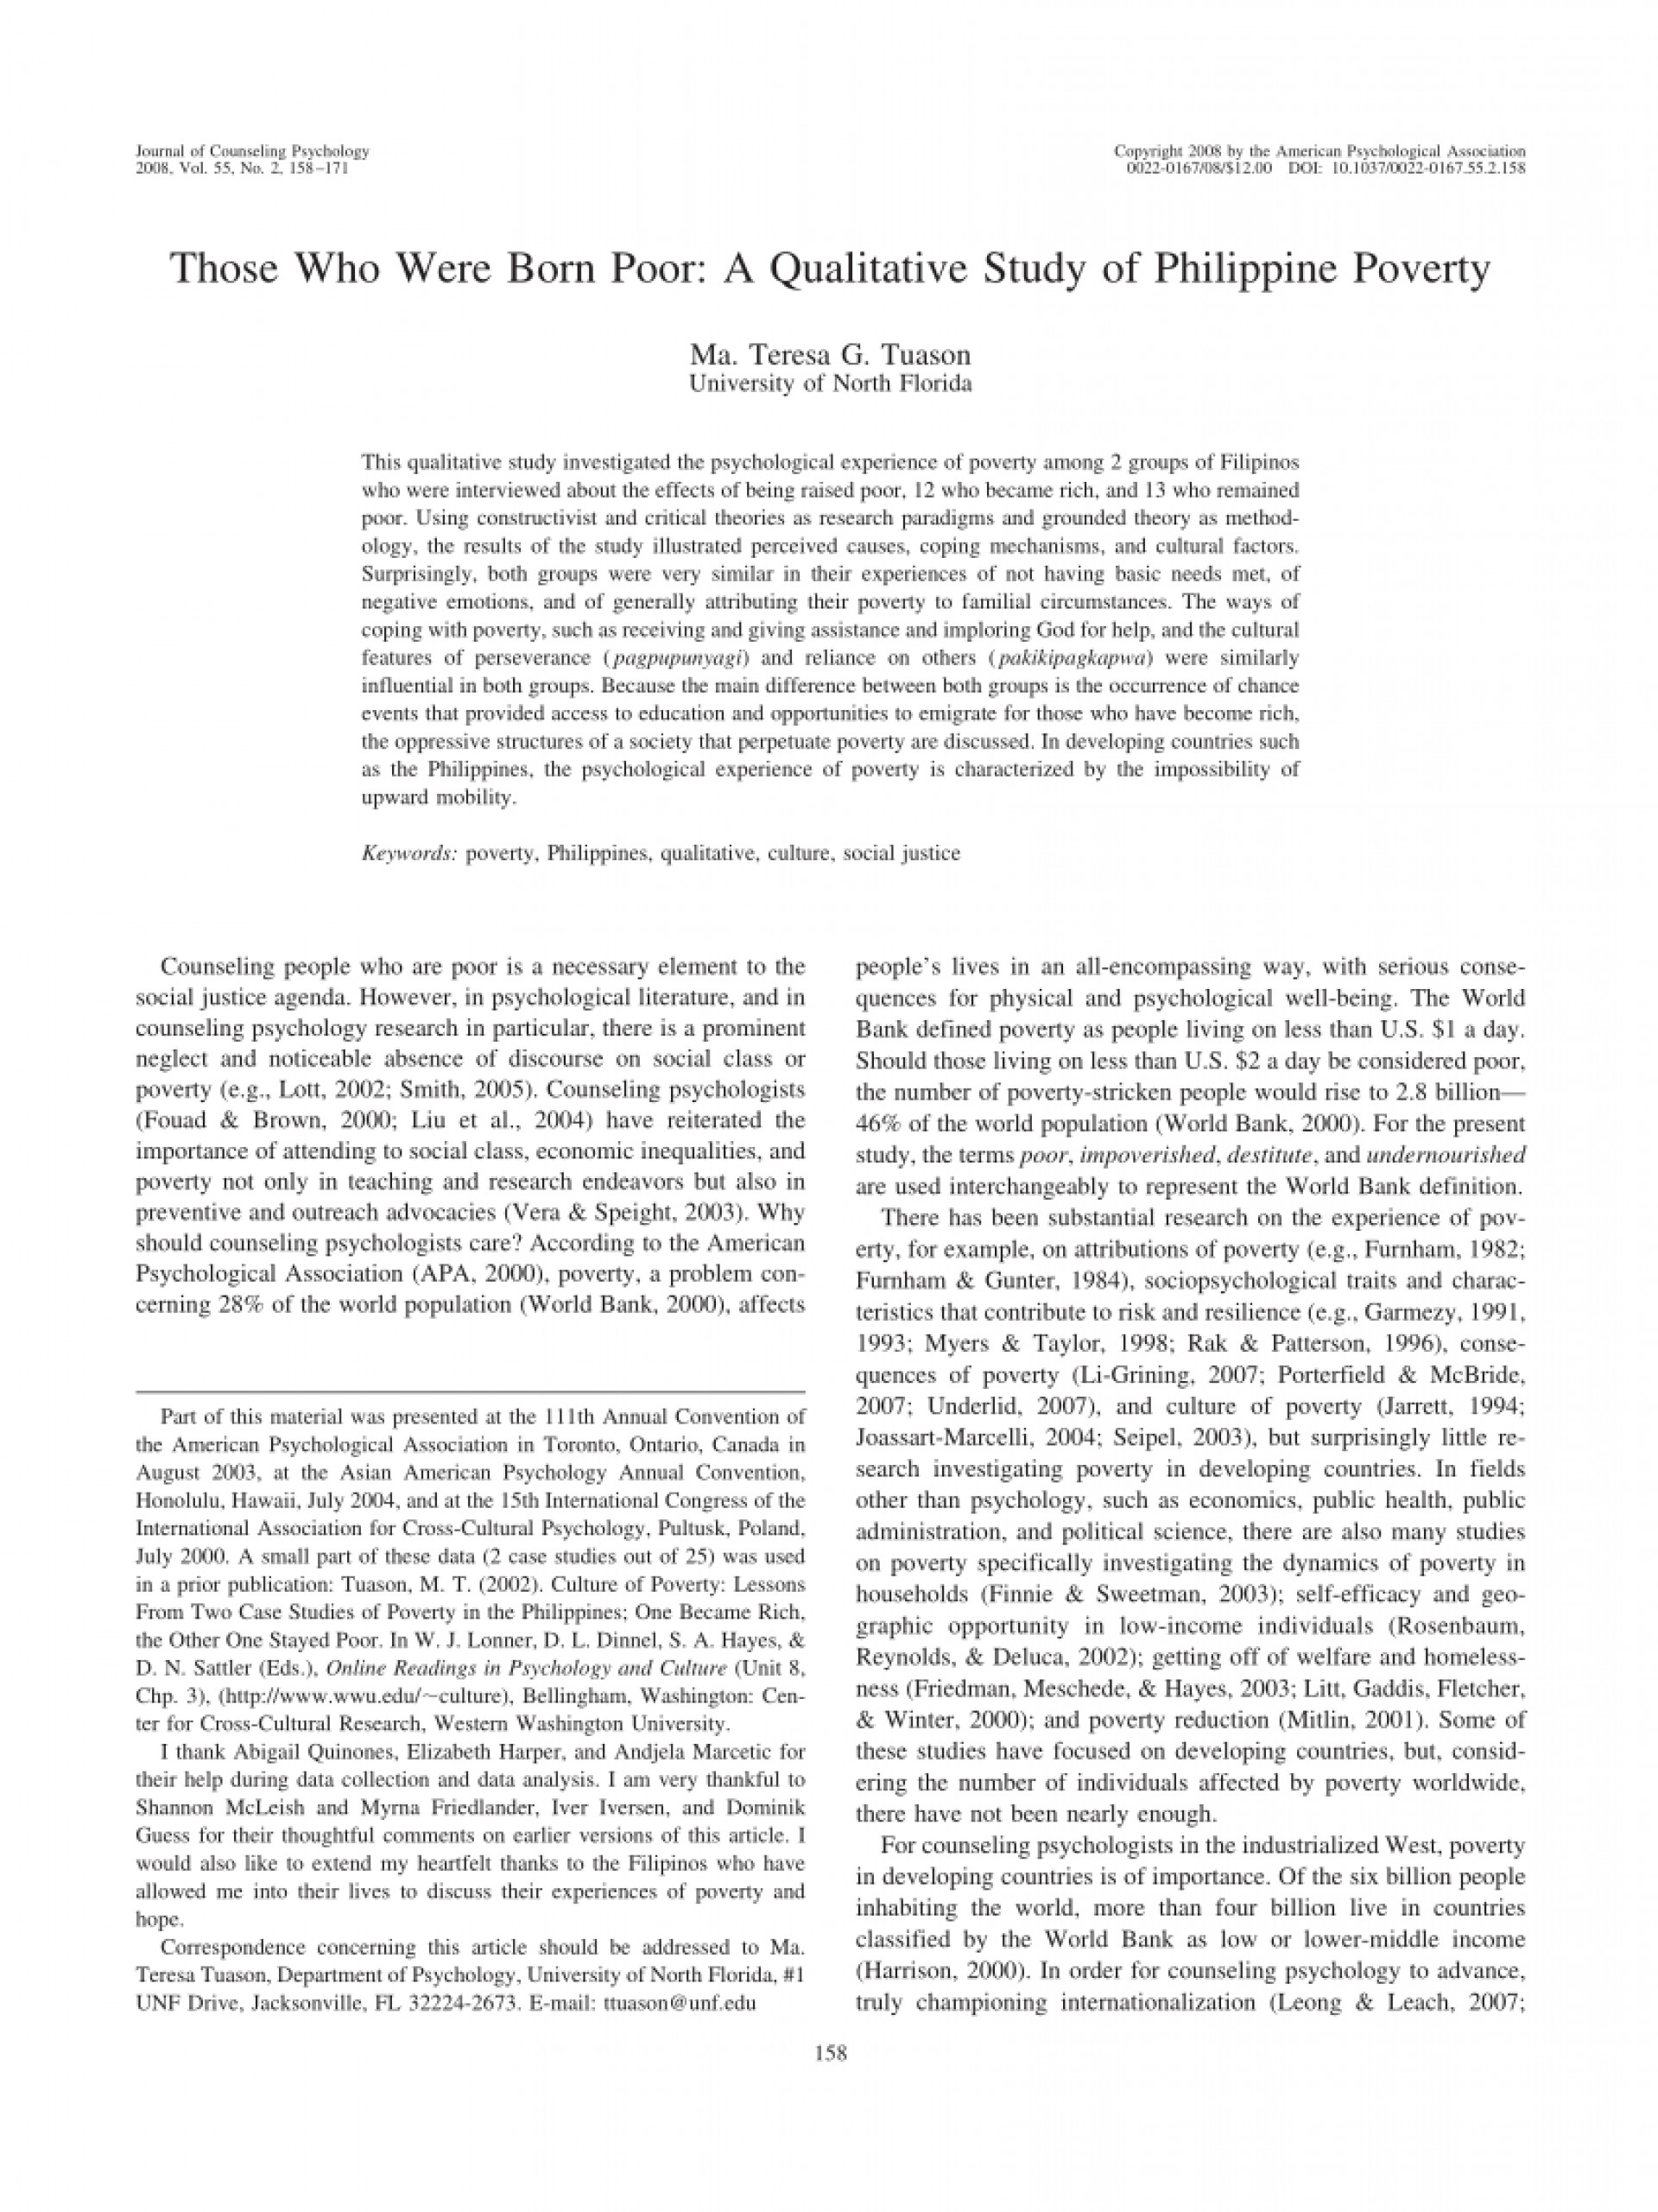 001 Poverty In The Philippines Research Paper Pdf Impressive 1920